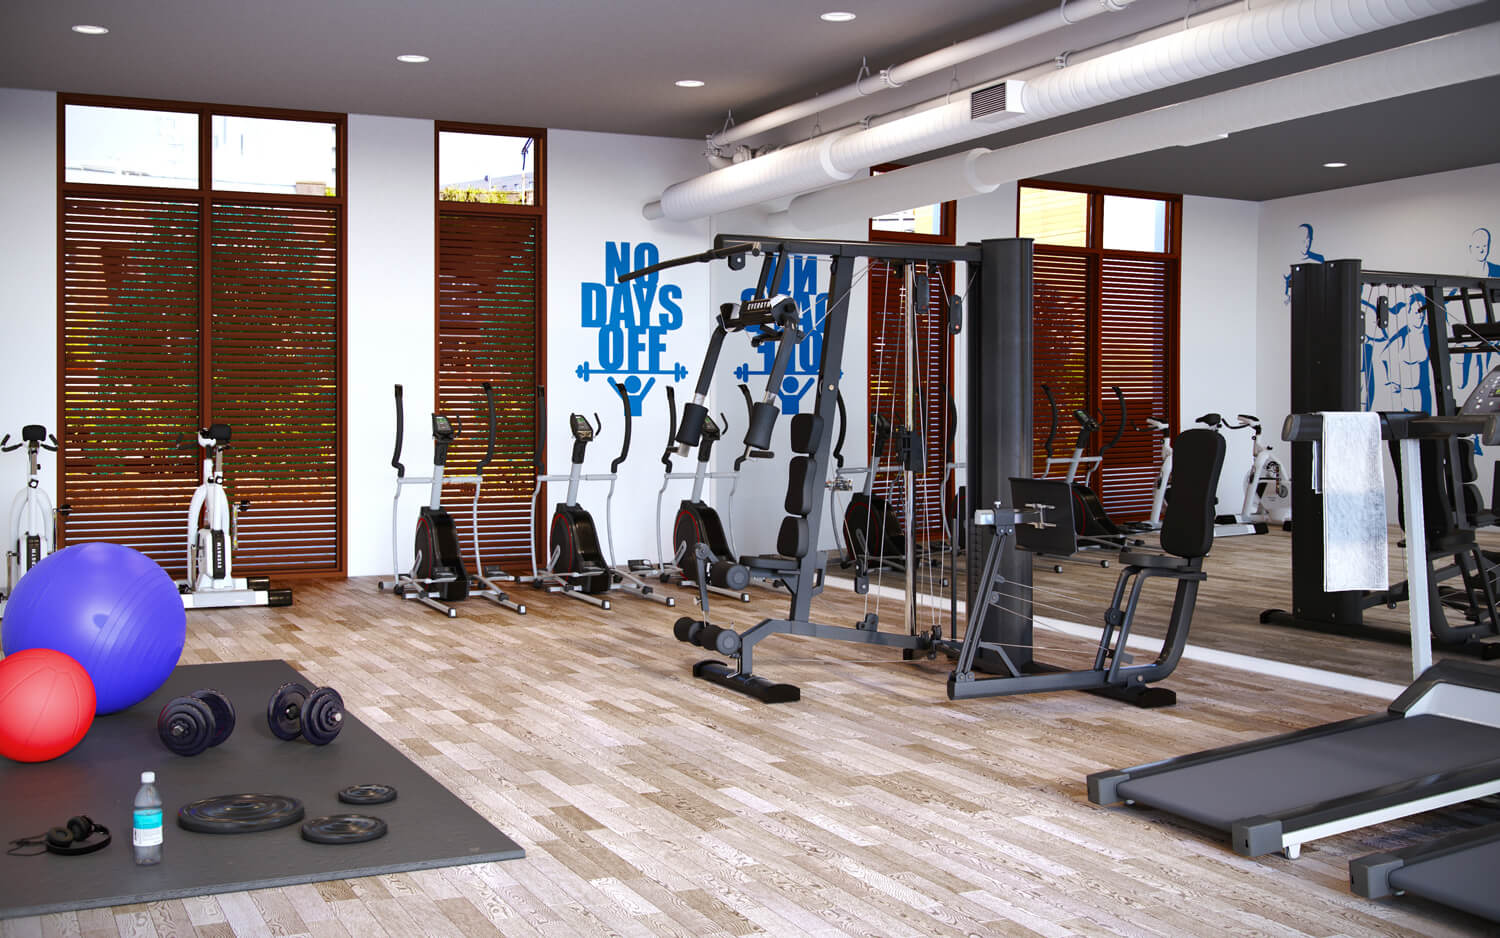 Urban CGI of Derwent Street high rise development, showing a fully equipped gym with treadmills, bikes and weights machines.